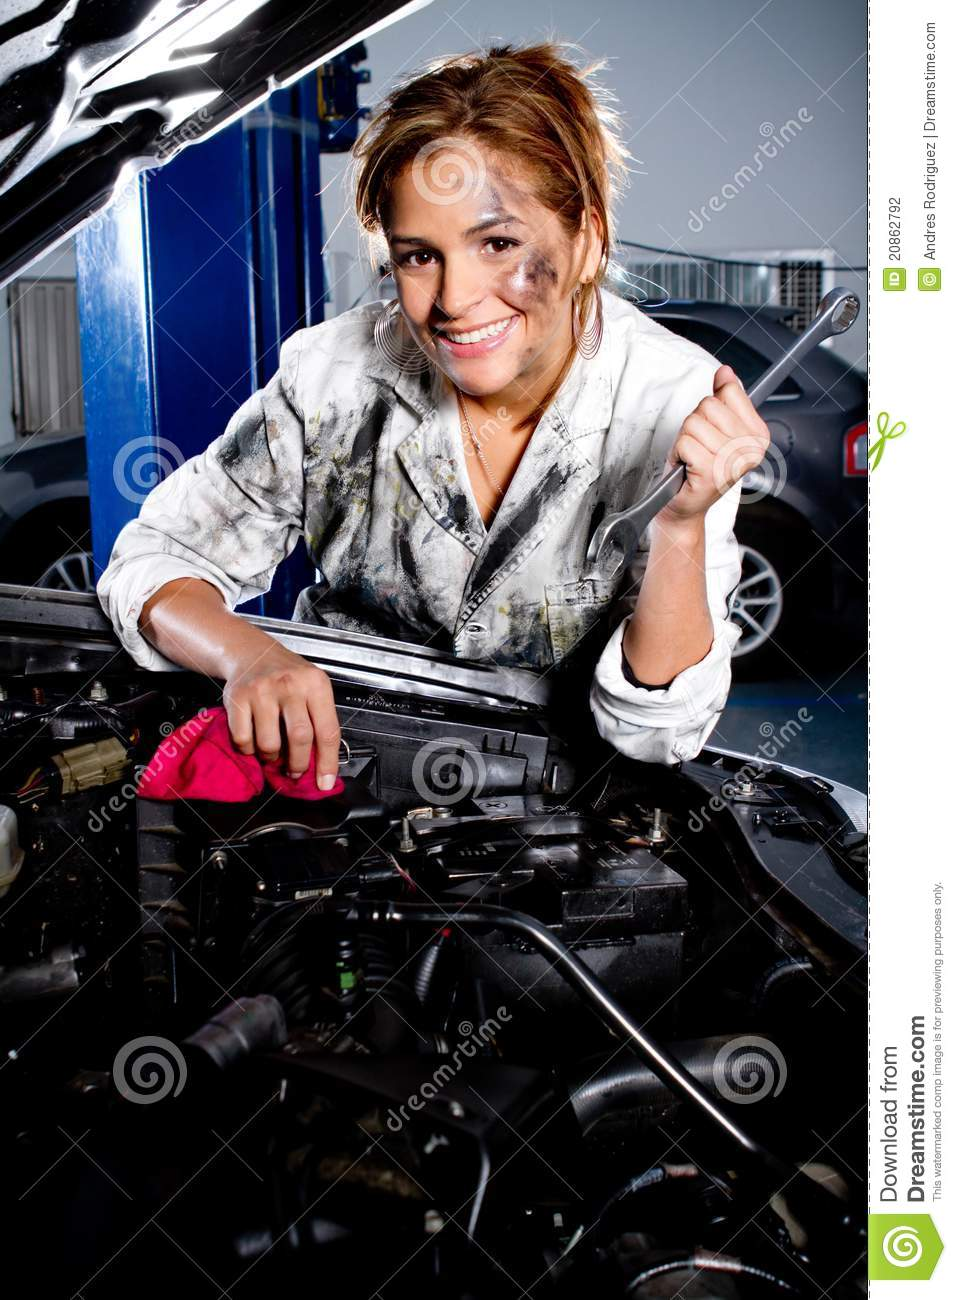 Mechanic In A Garage Stock Photography